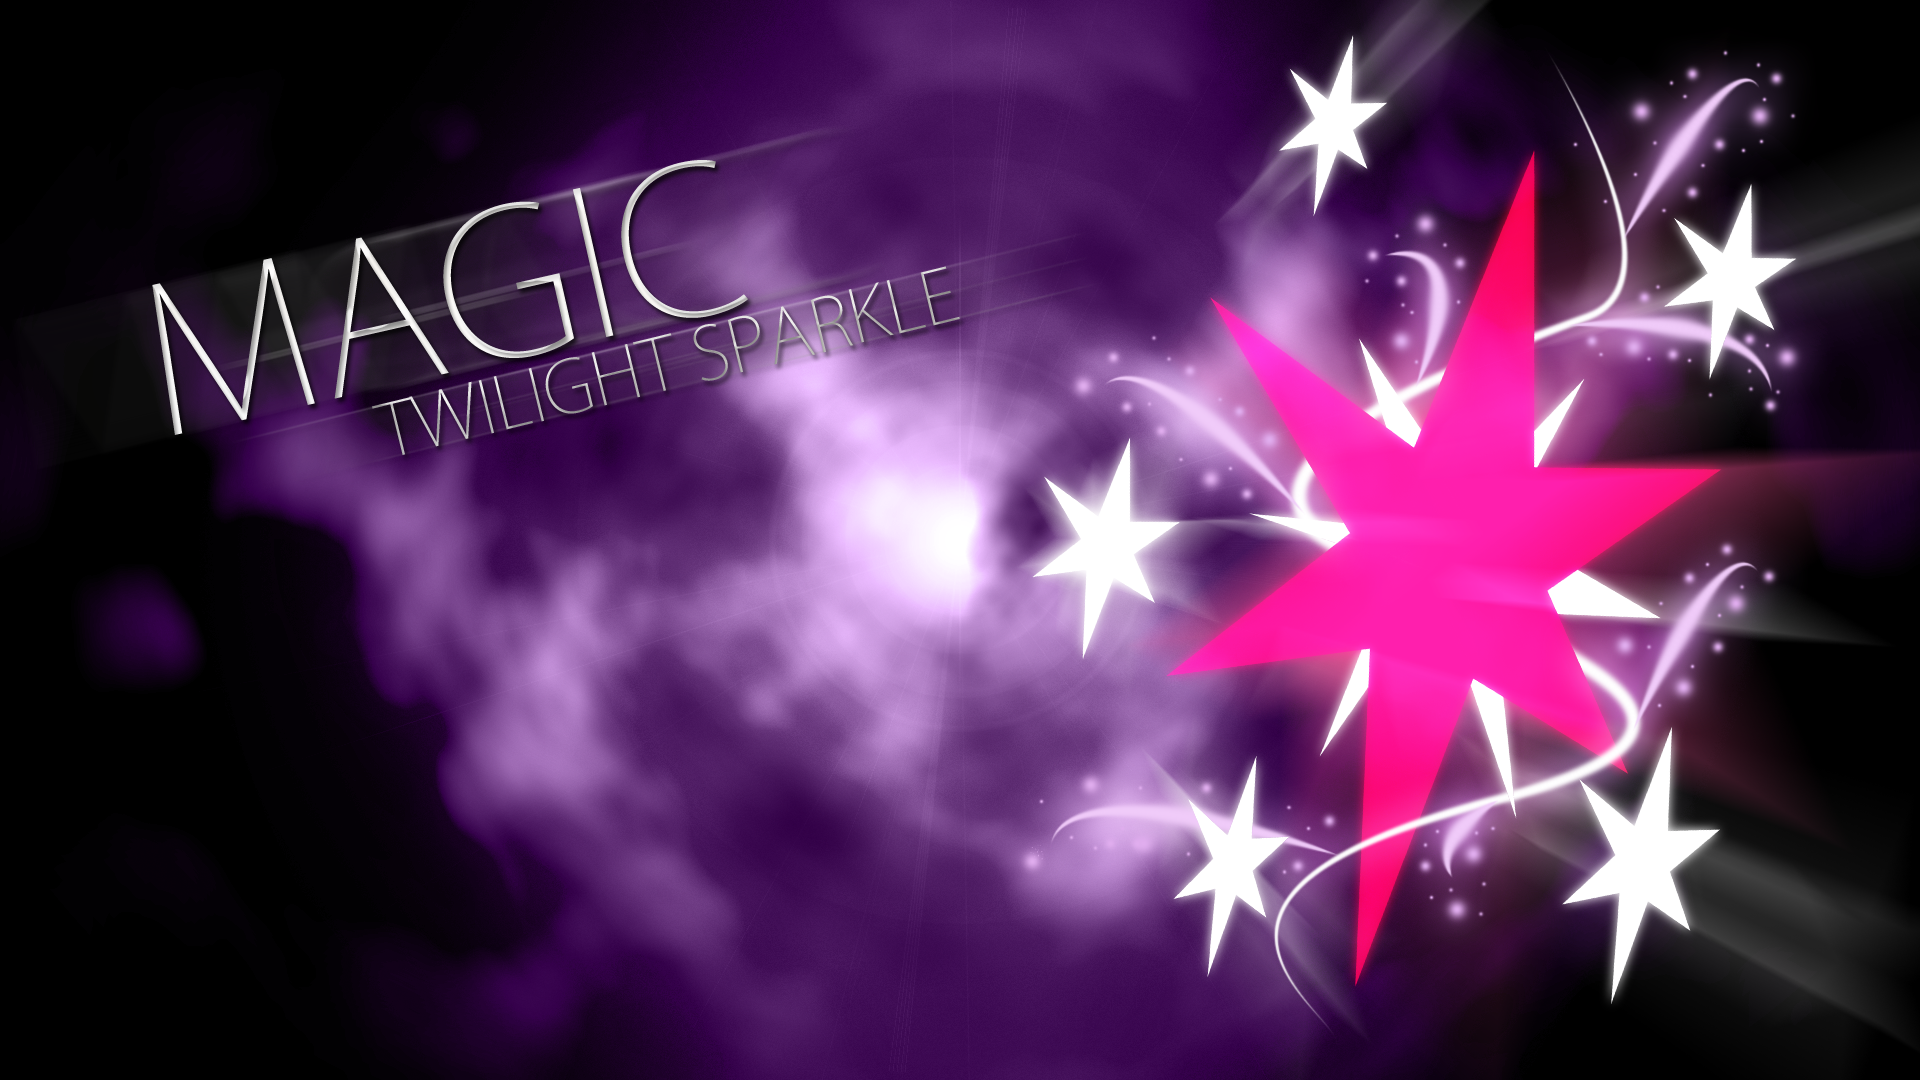 Twilight sparkle magic cutie mark wallpaper by - My little pony cutie mark wallpaper ...